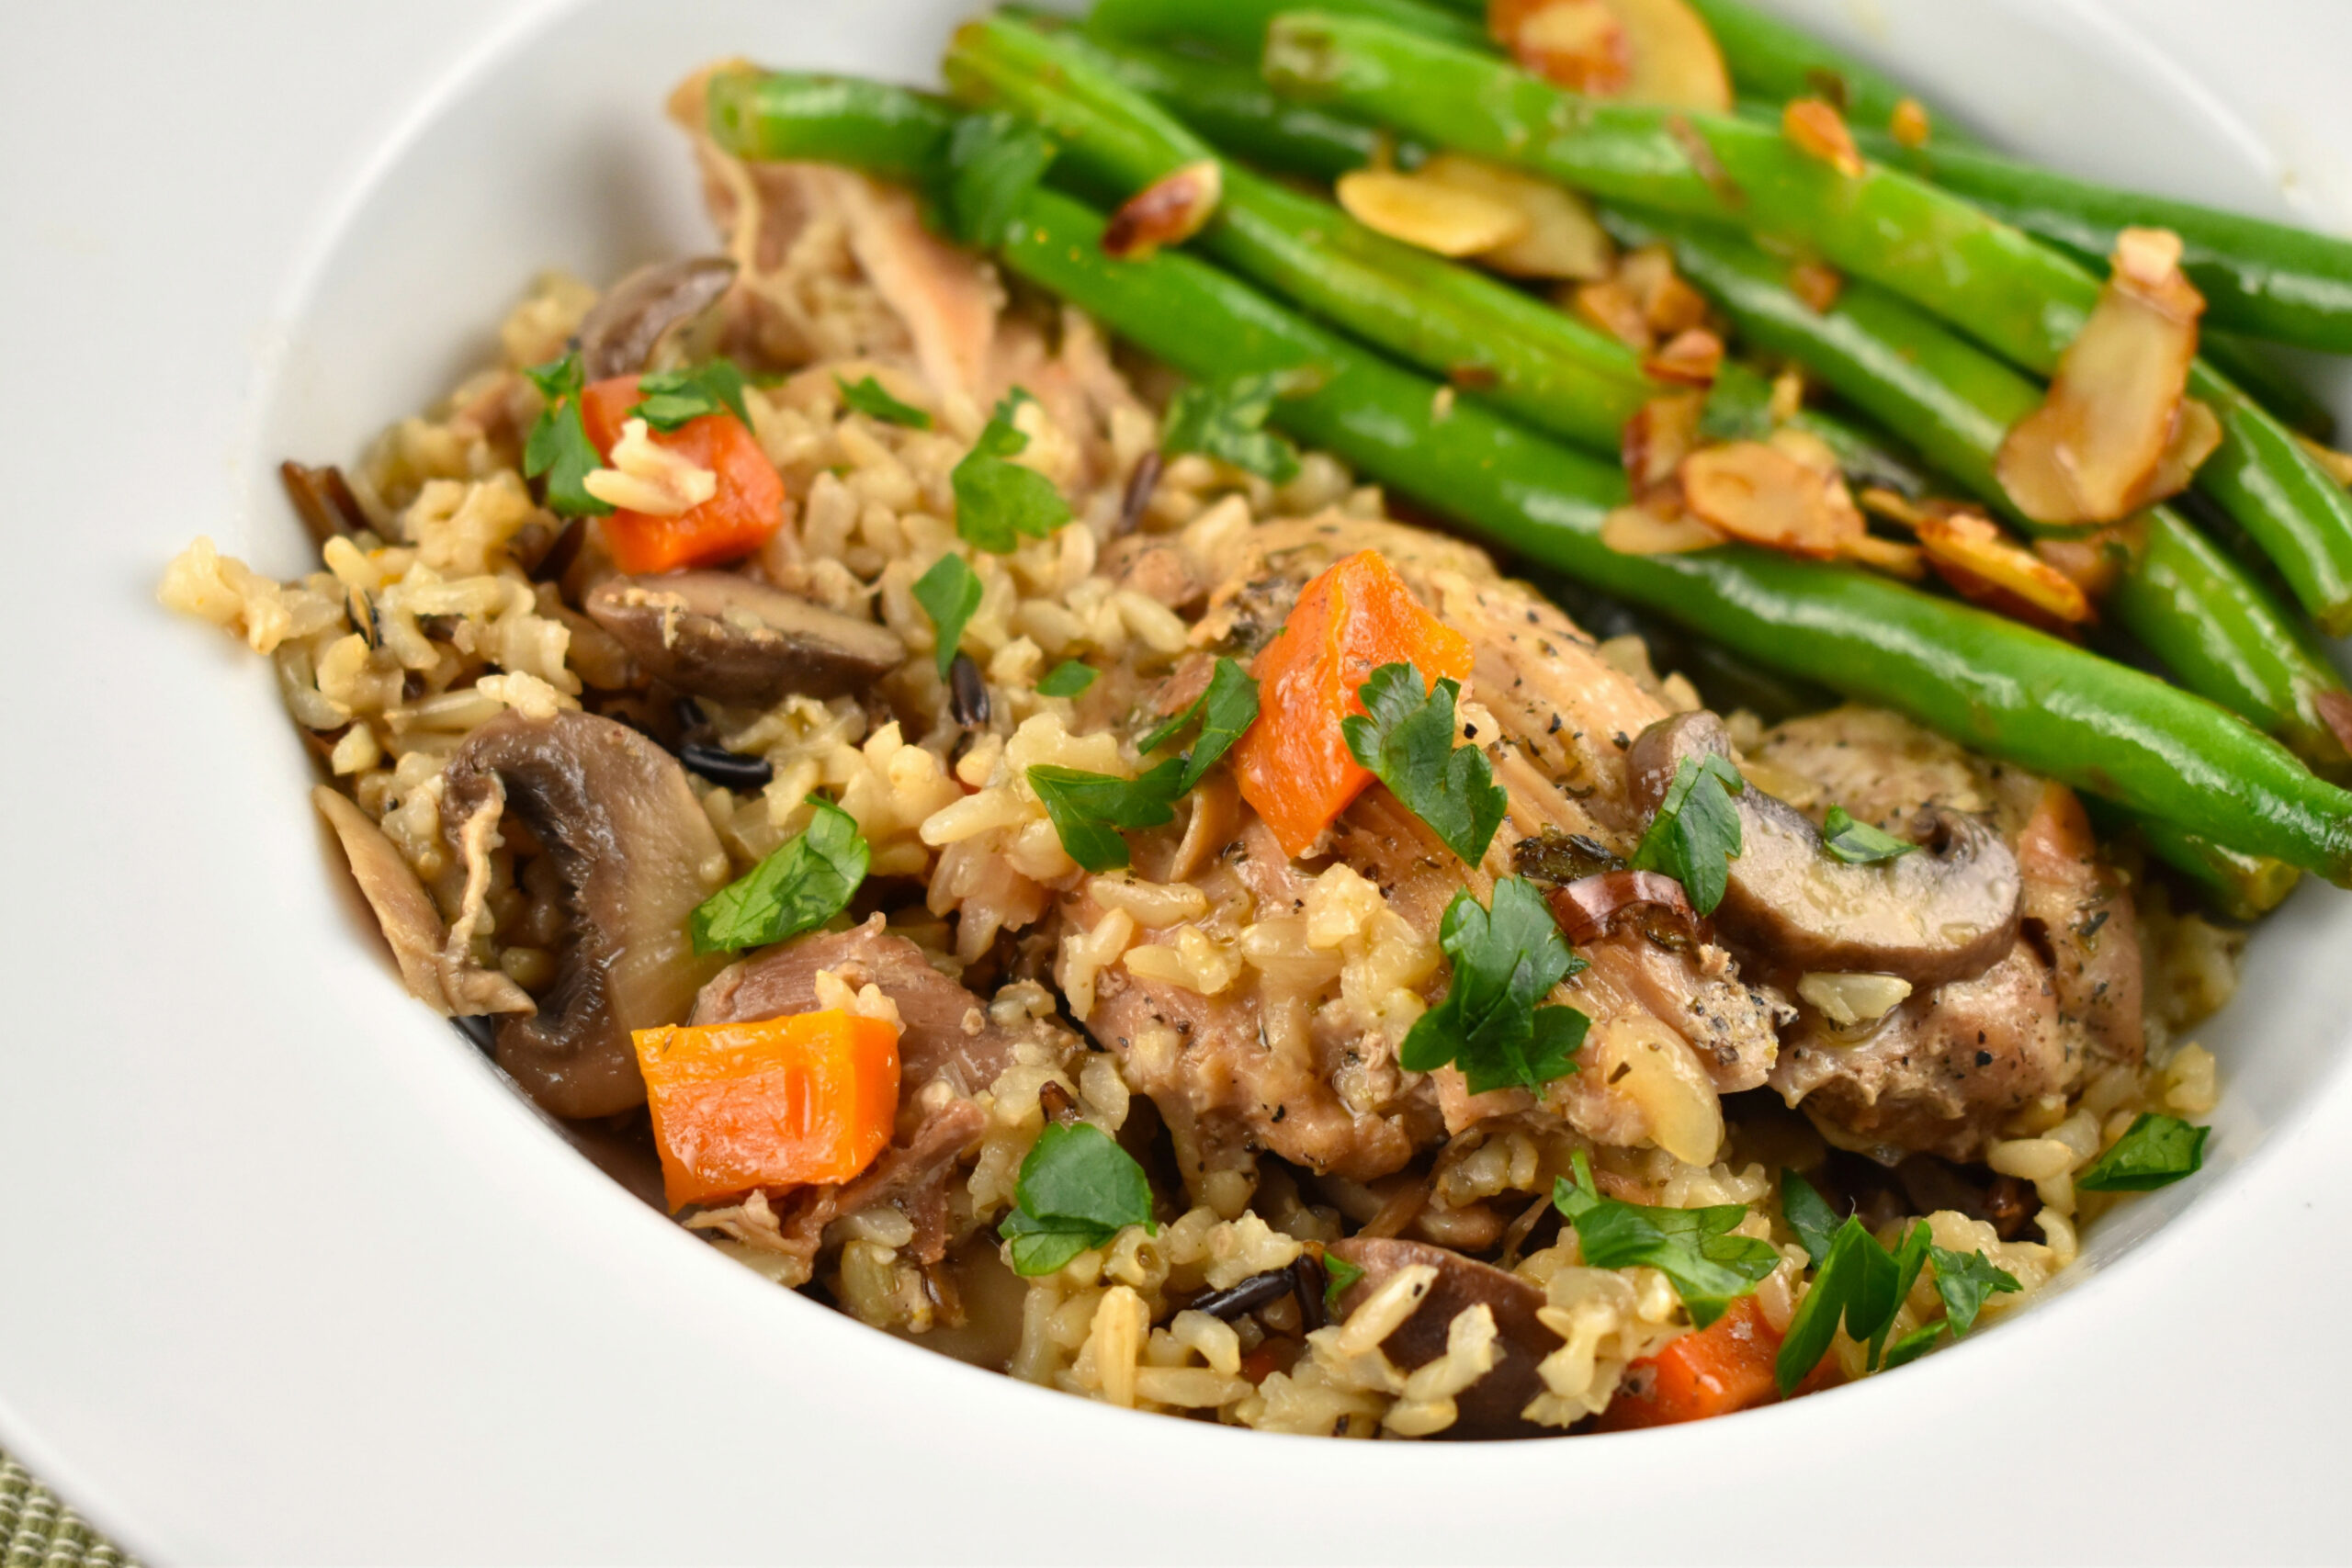 Instant Pot Chicken And Rice Recipe - 11 Points - LaaLoosh - Instant Pot Recipes Chicken And Rice